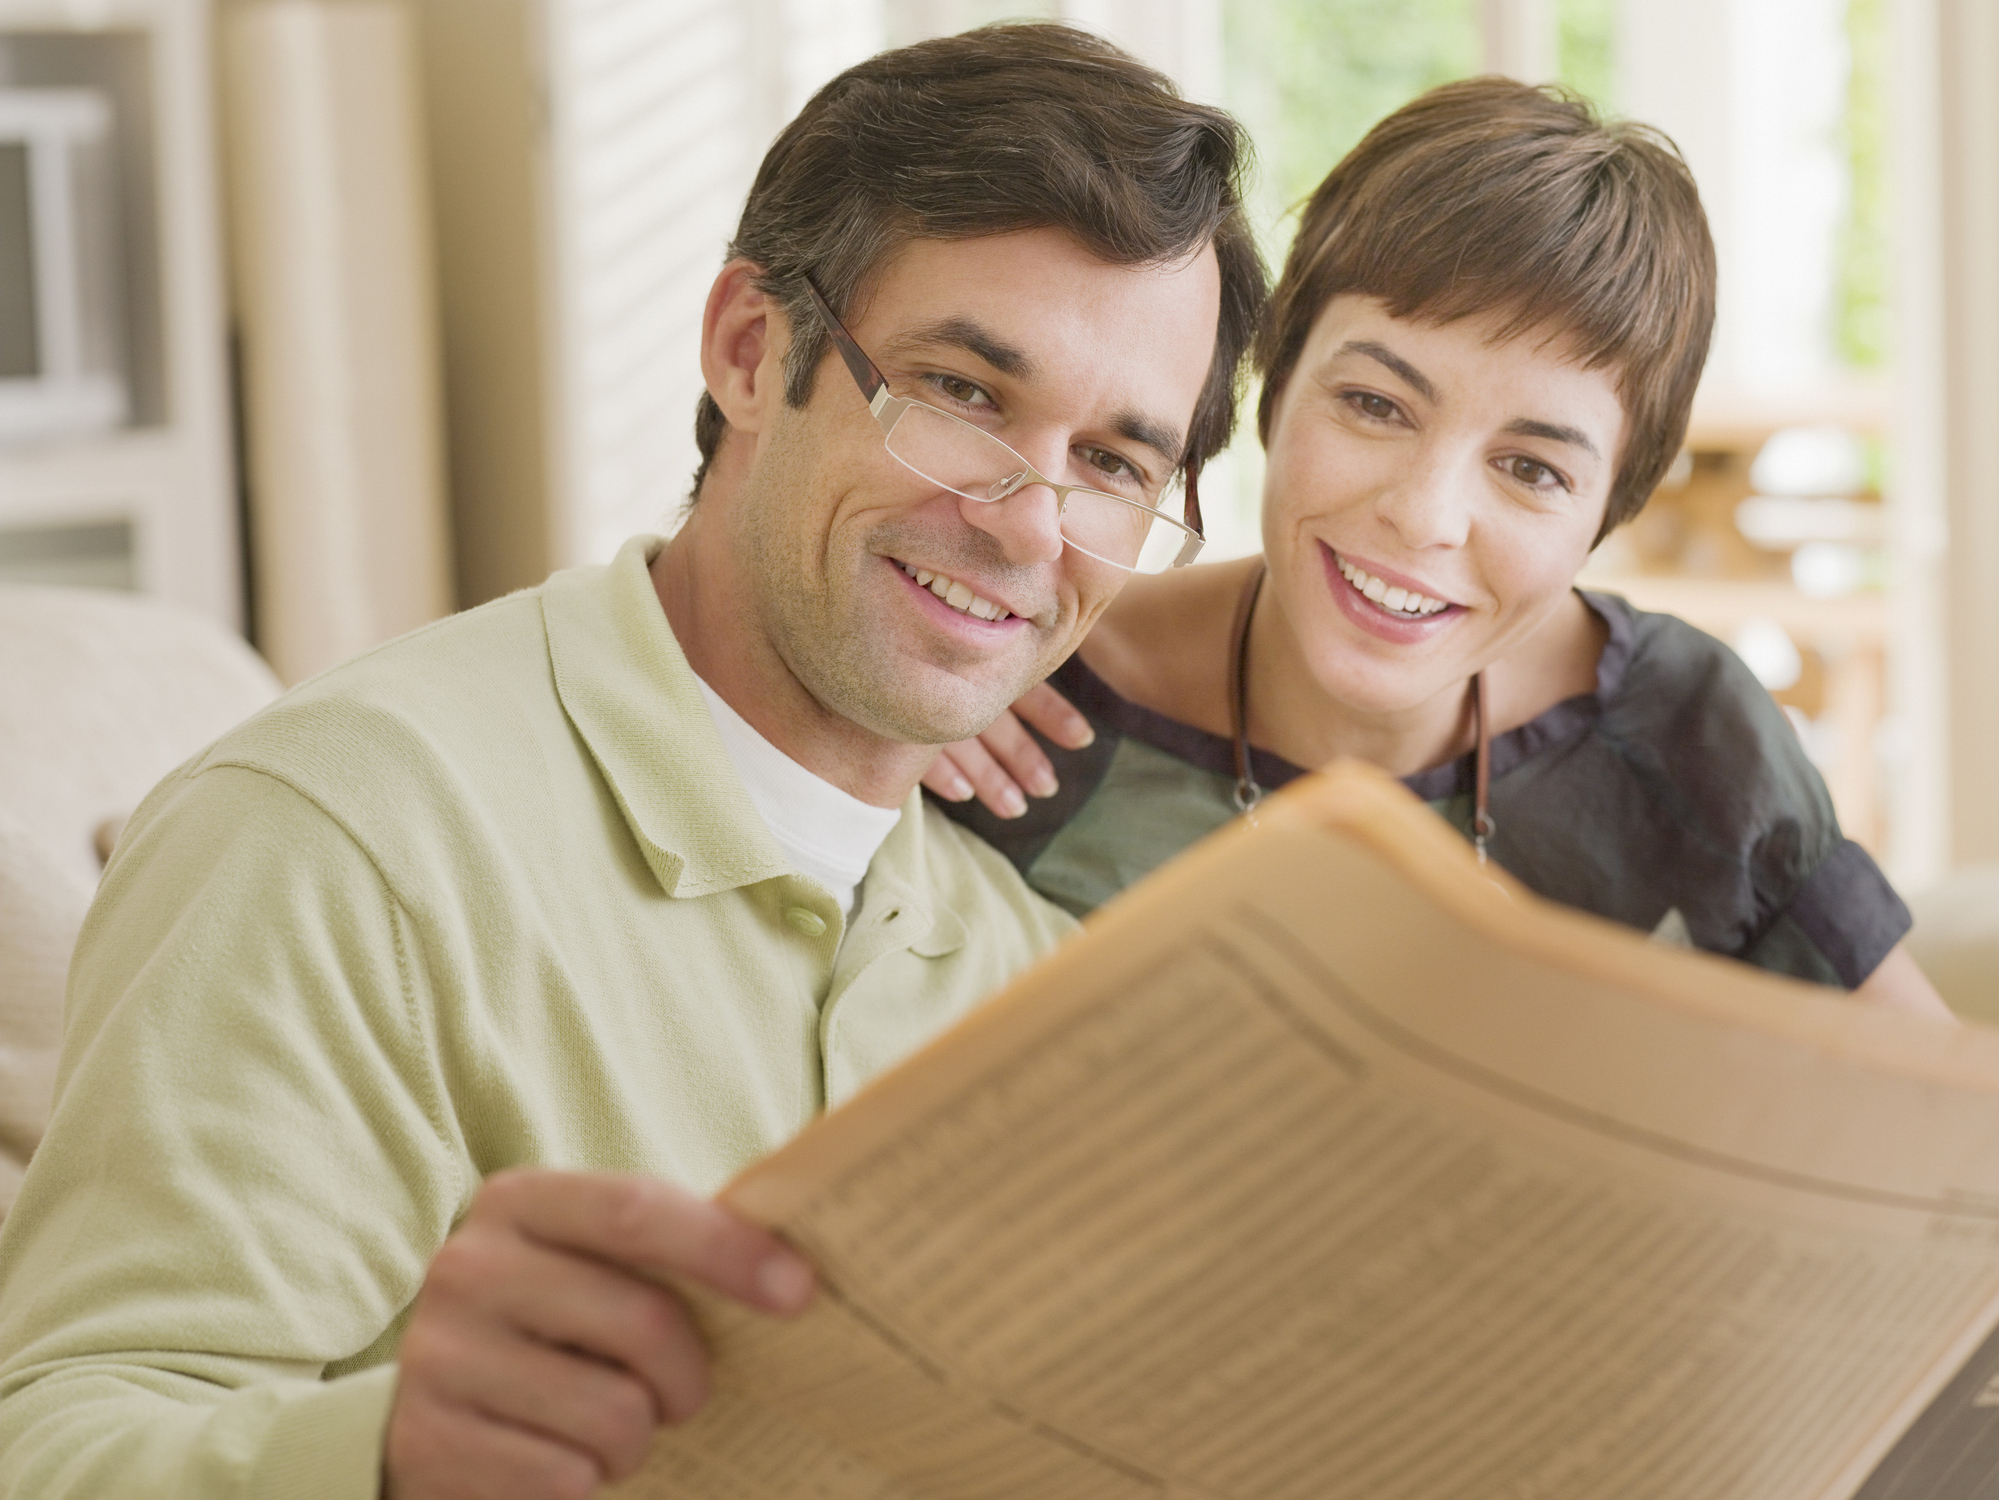 A couple looking at a newspaper together.